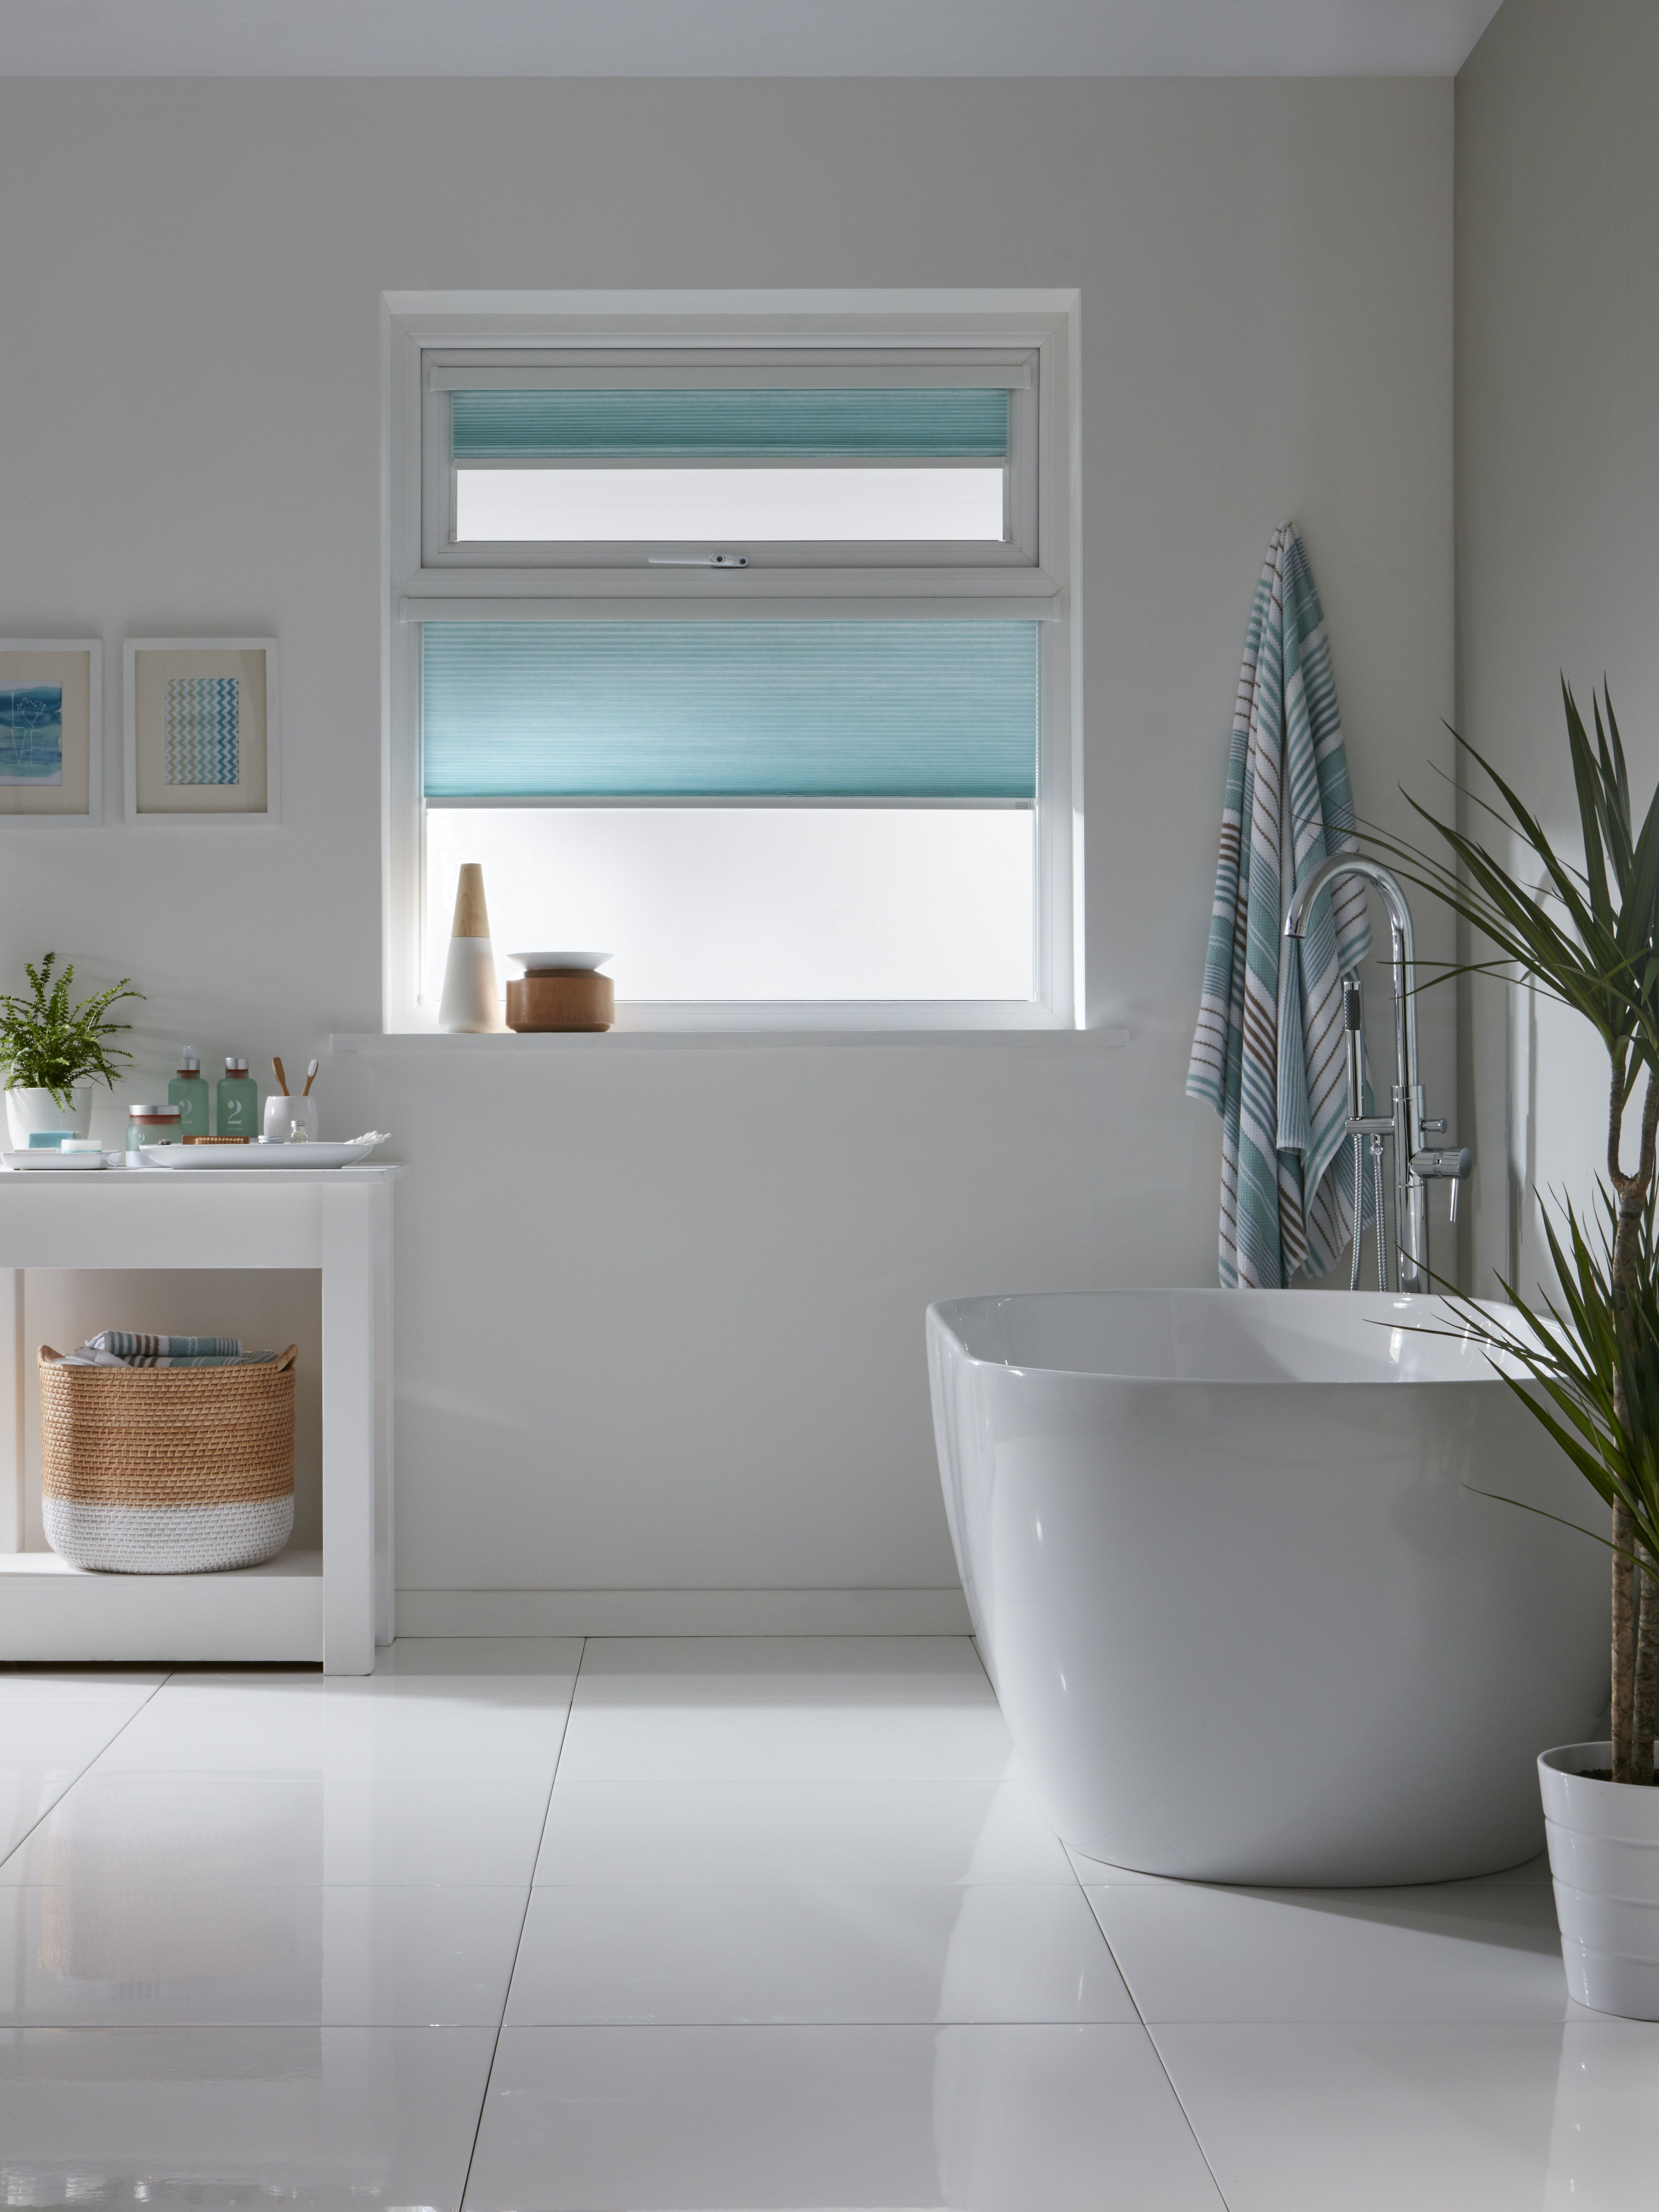 Intu bathroom blinds in aqua from Apollo Blinds. Made to ...